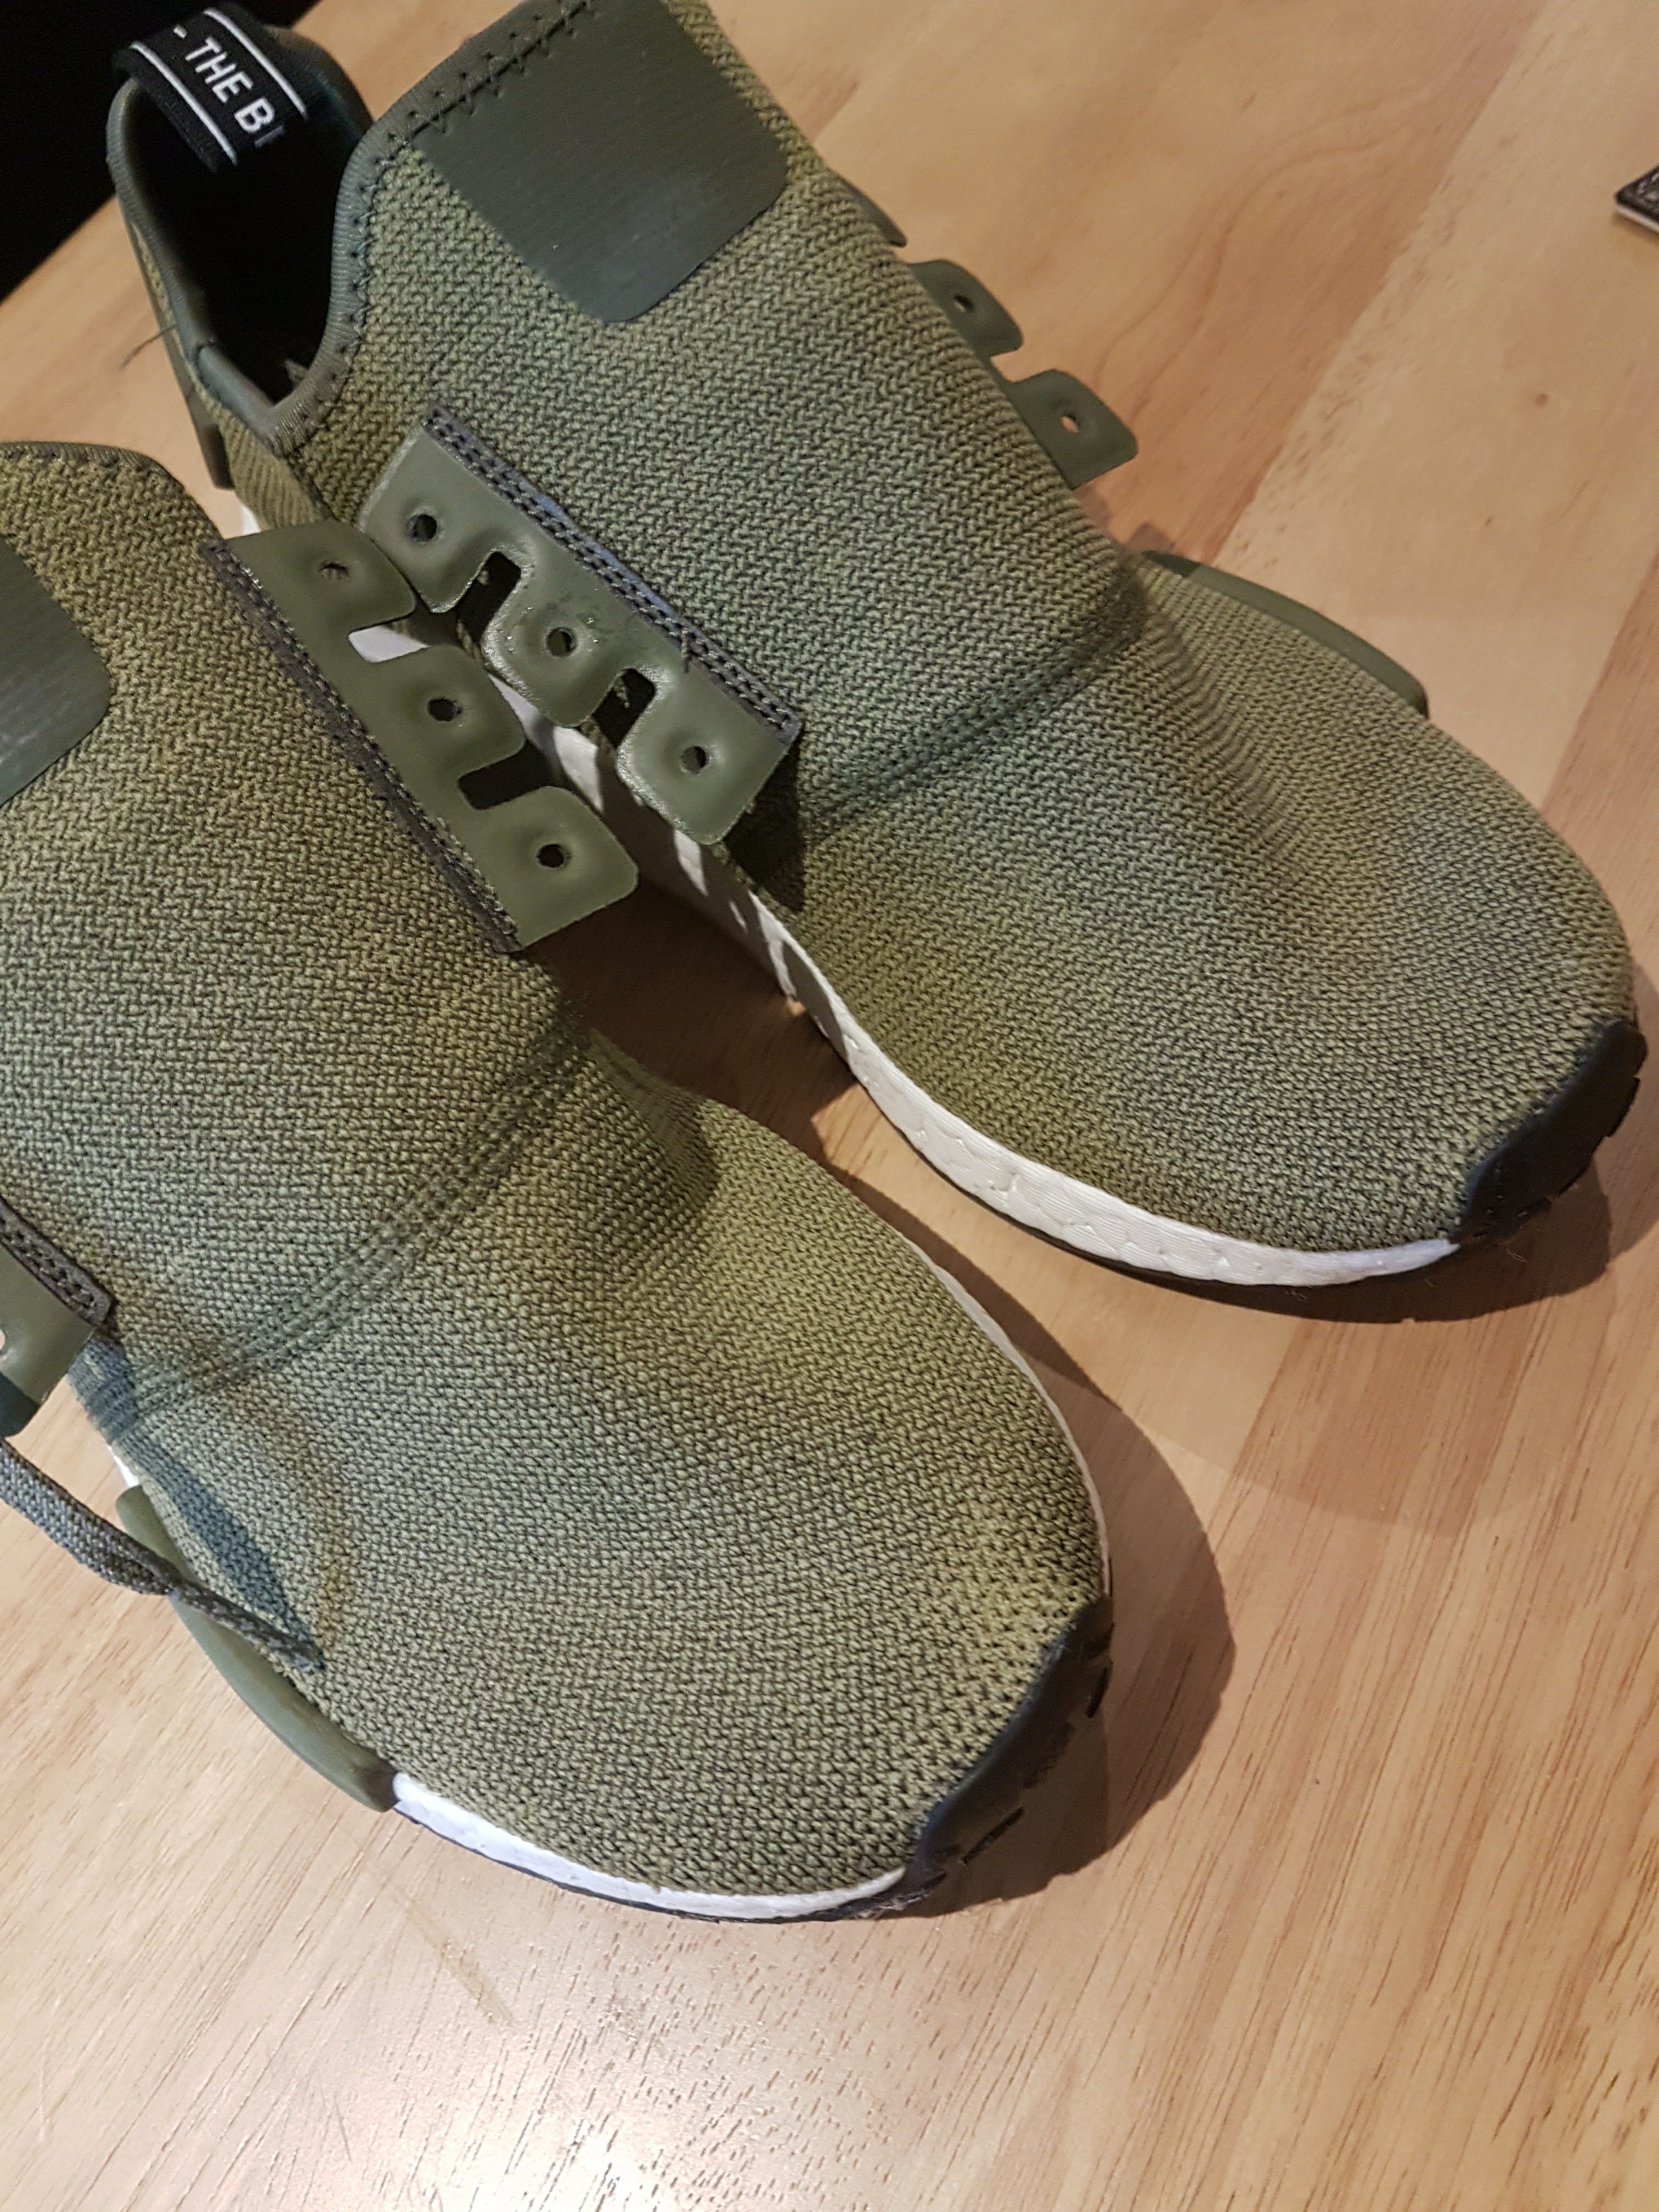 Top     Complaints and Reviews about Footlocker Consumer Affairs I purchased from Footlocker a pair of Olive NMD     s almost two months ago  After wearing them     times  the colour started to fade